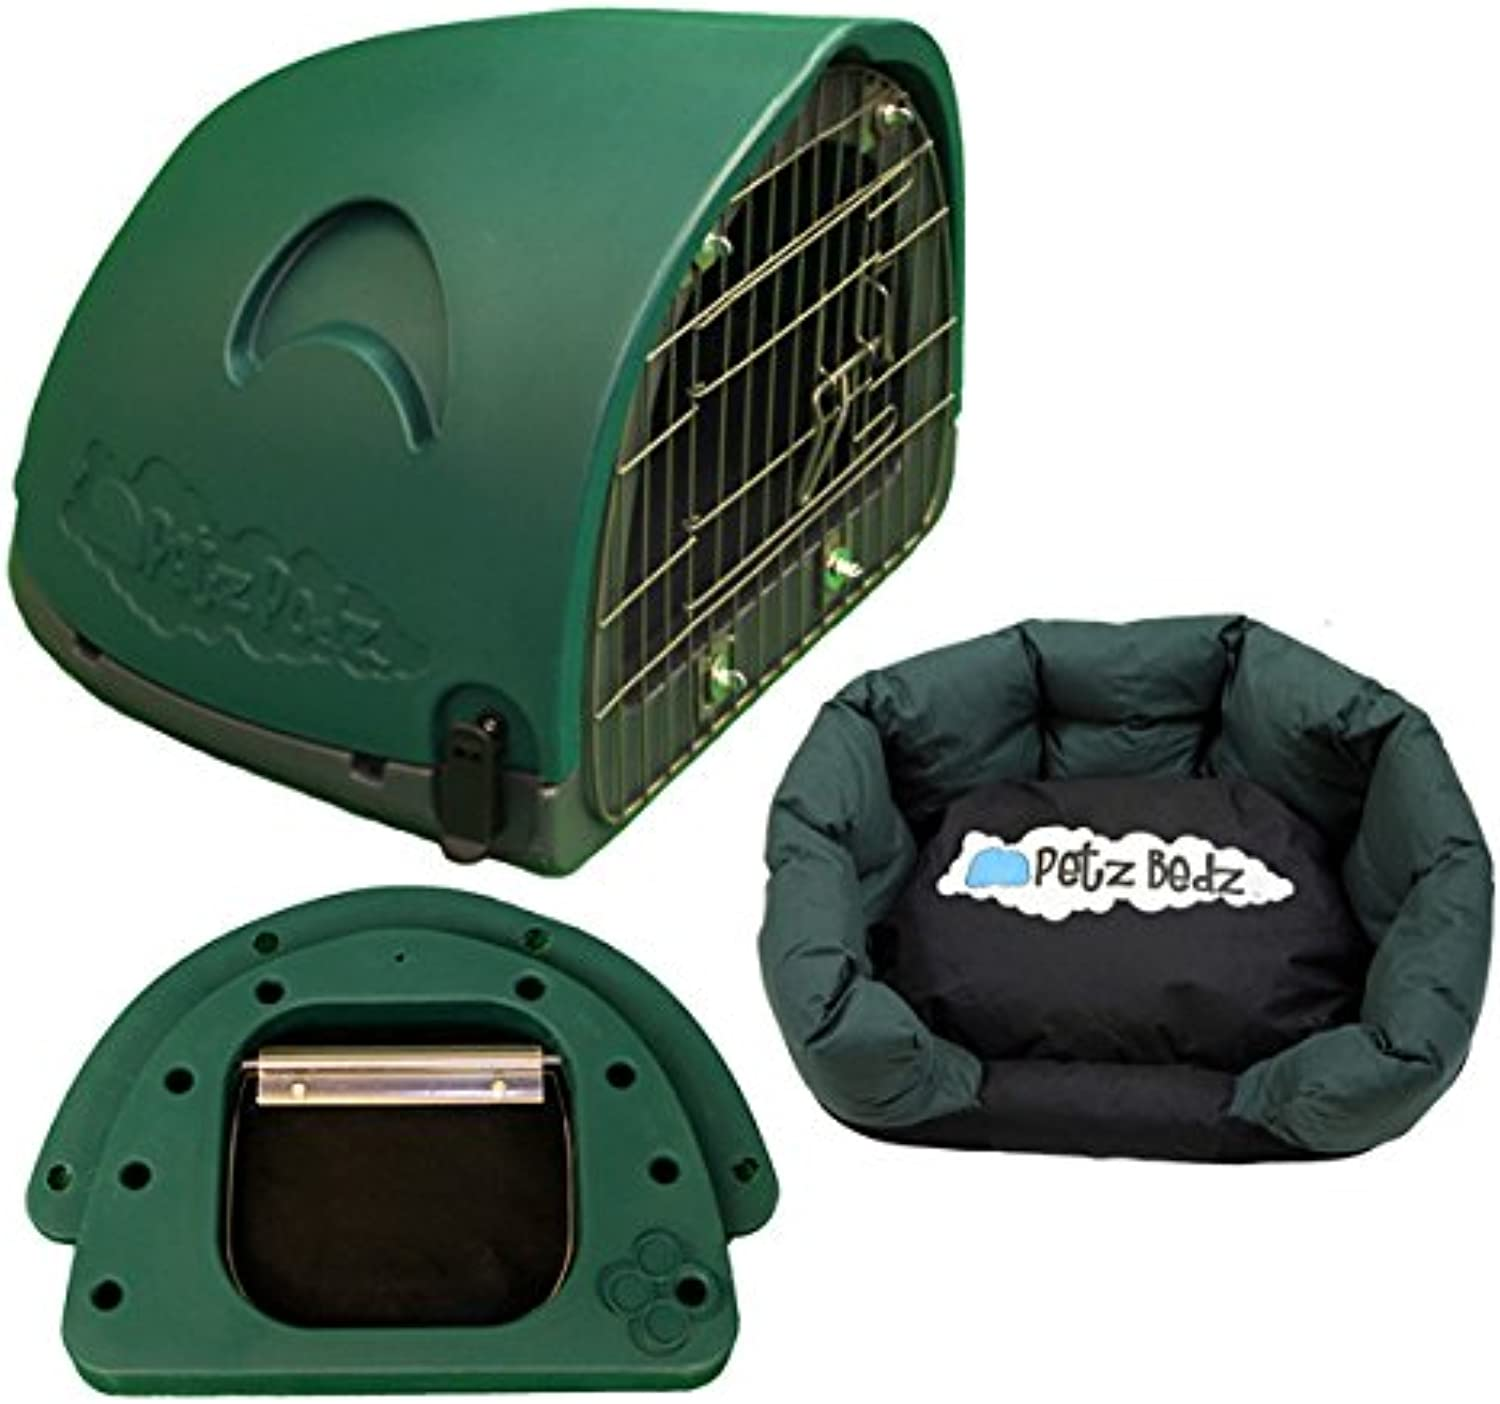 PetzPodz CAT POD with front grill green SMALL den cave kennel house bed indoor & outdoor designer plastic shelter crate and cat travel box